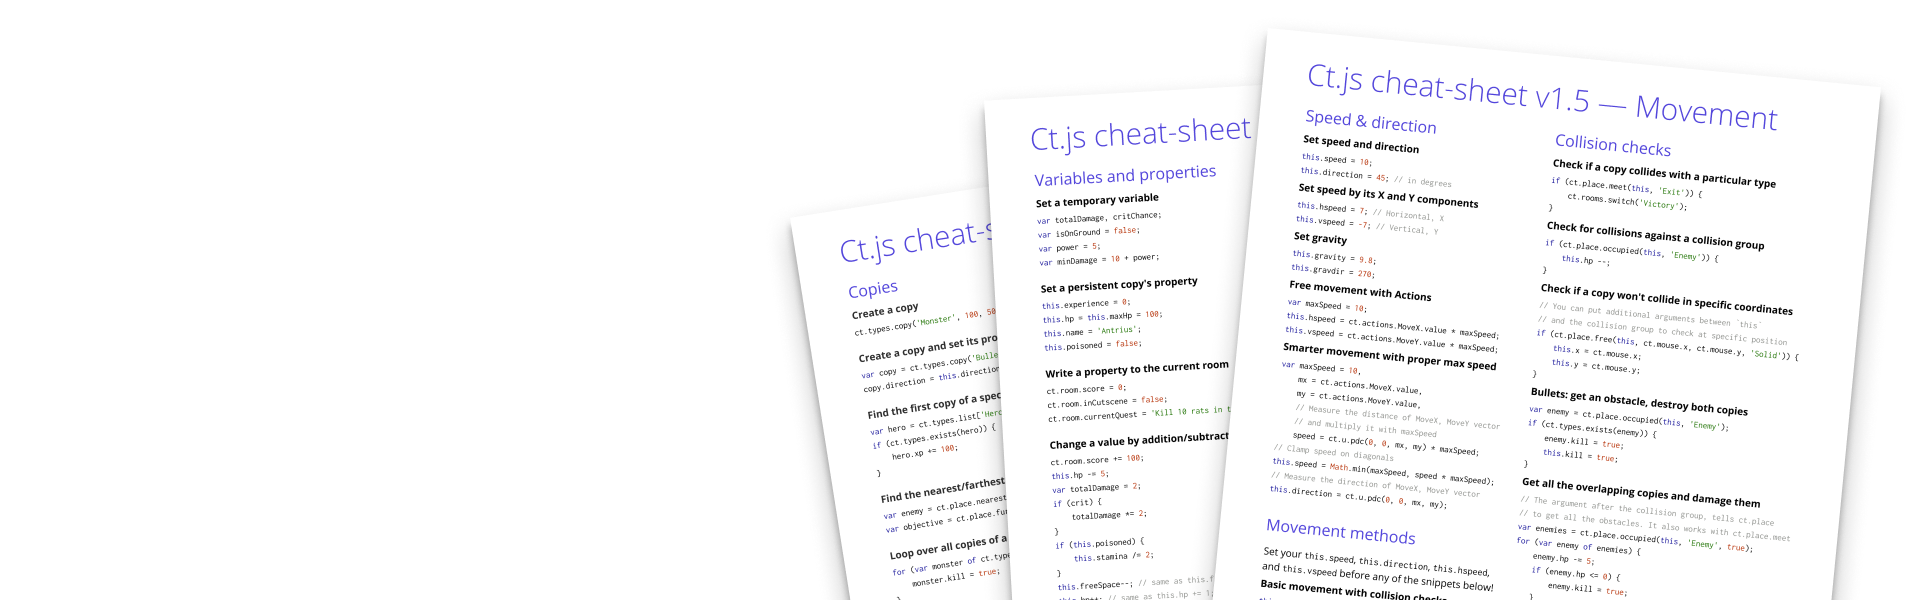 Ct.js cheat-sheet for v1.5